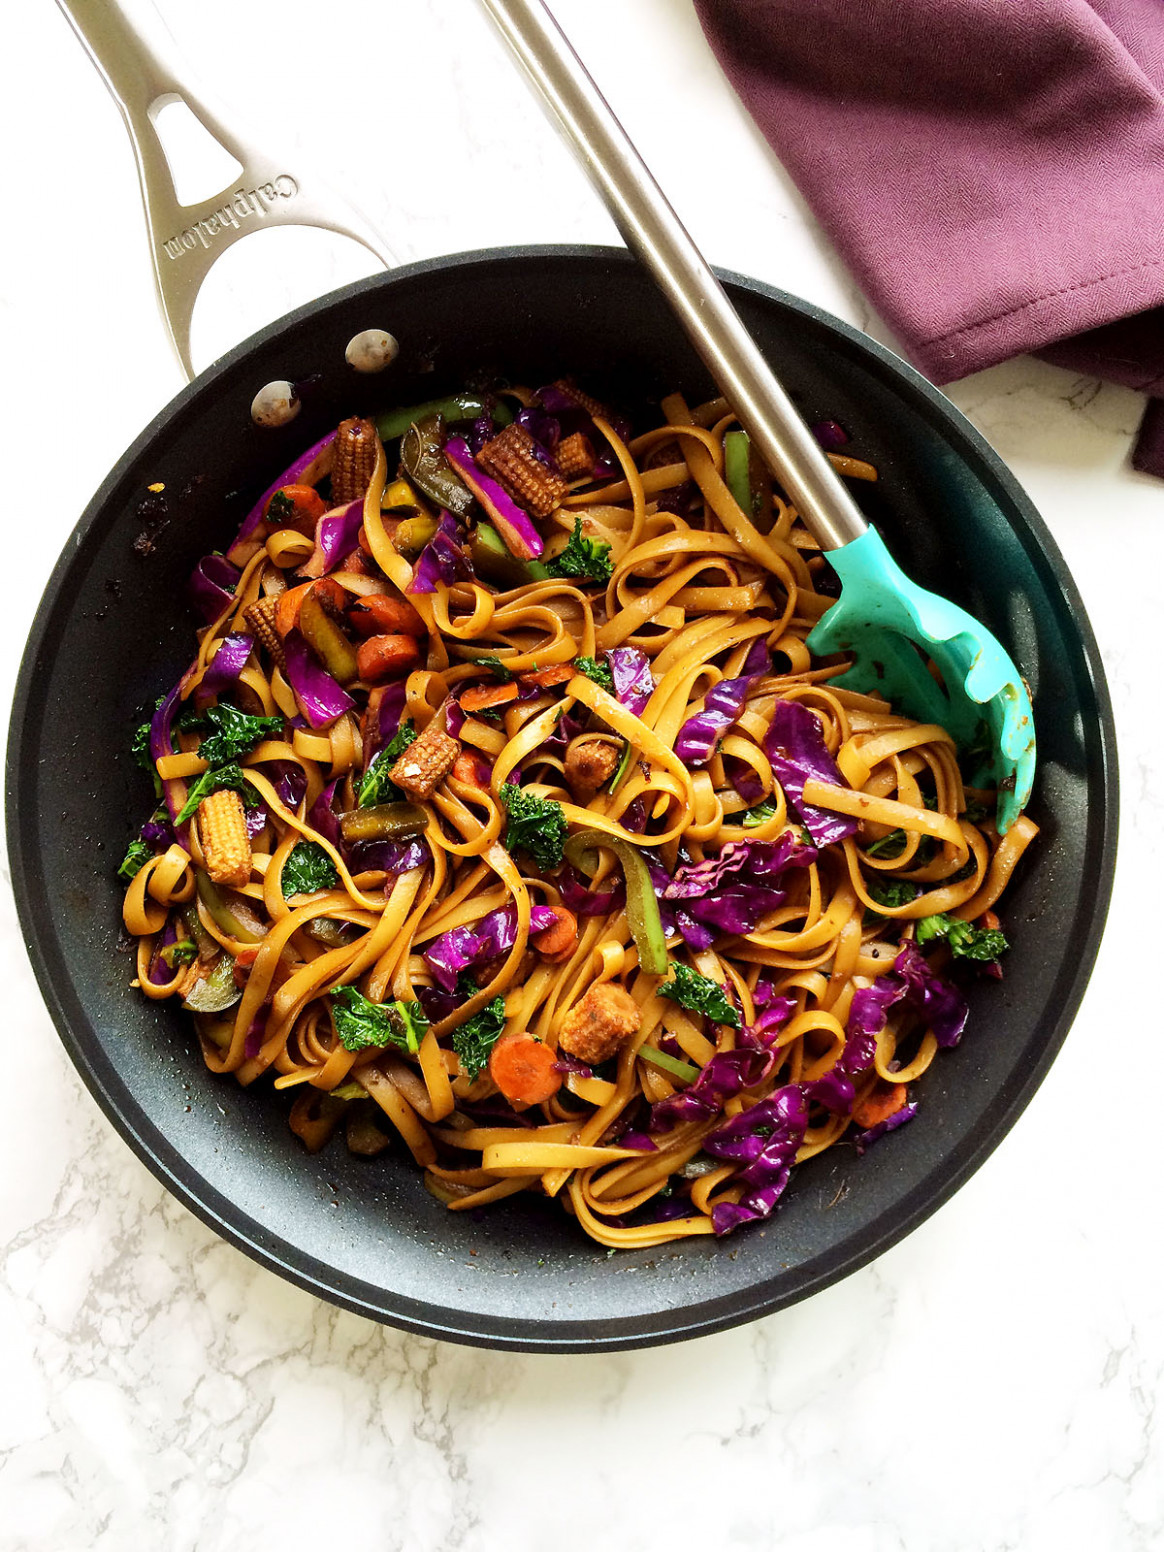 Vegan Mongolian Noodles And Veggies Stir Fry In Spicy Soy Ginger Sauce - Dinner Recipes Veg Indian In Hindi